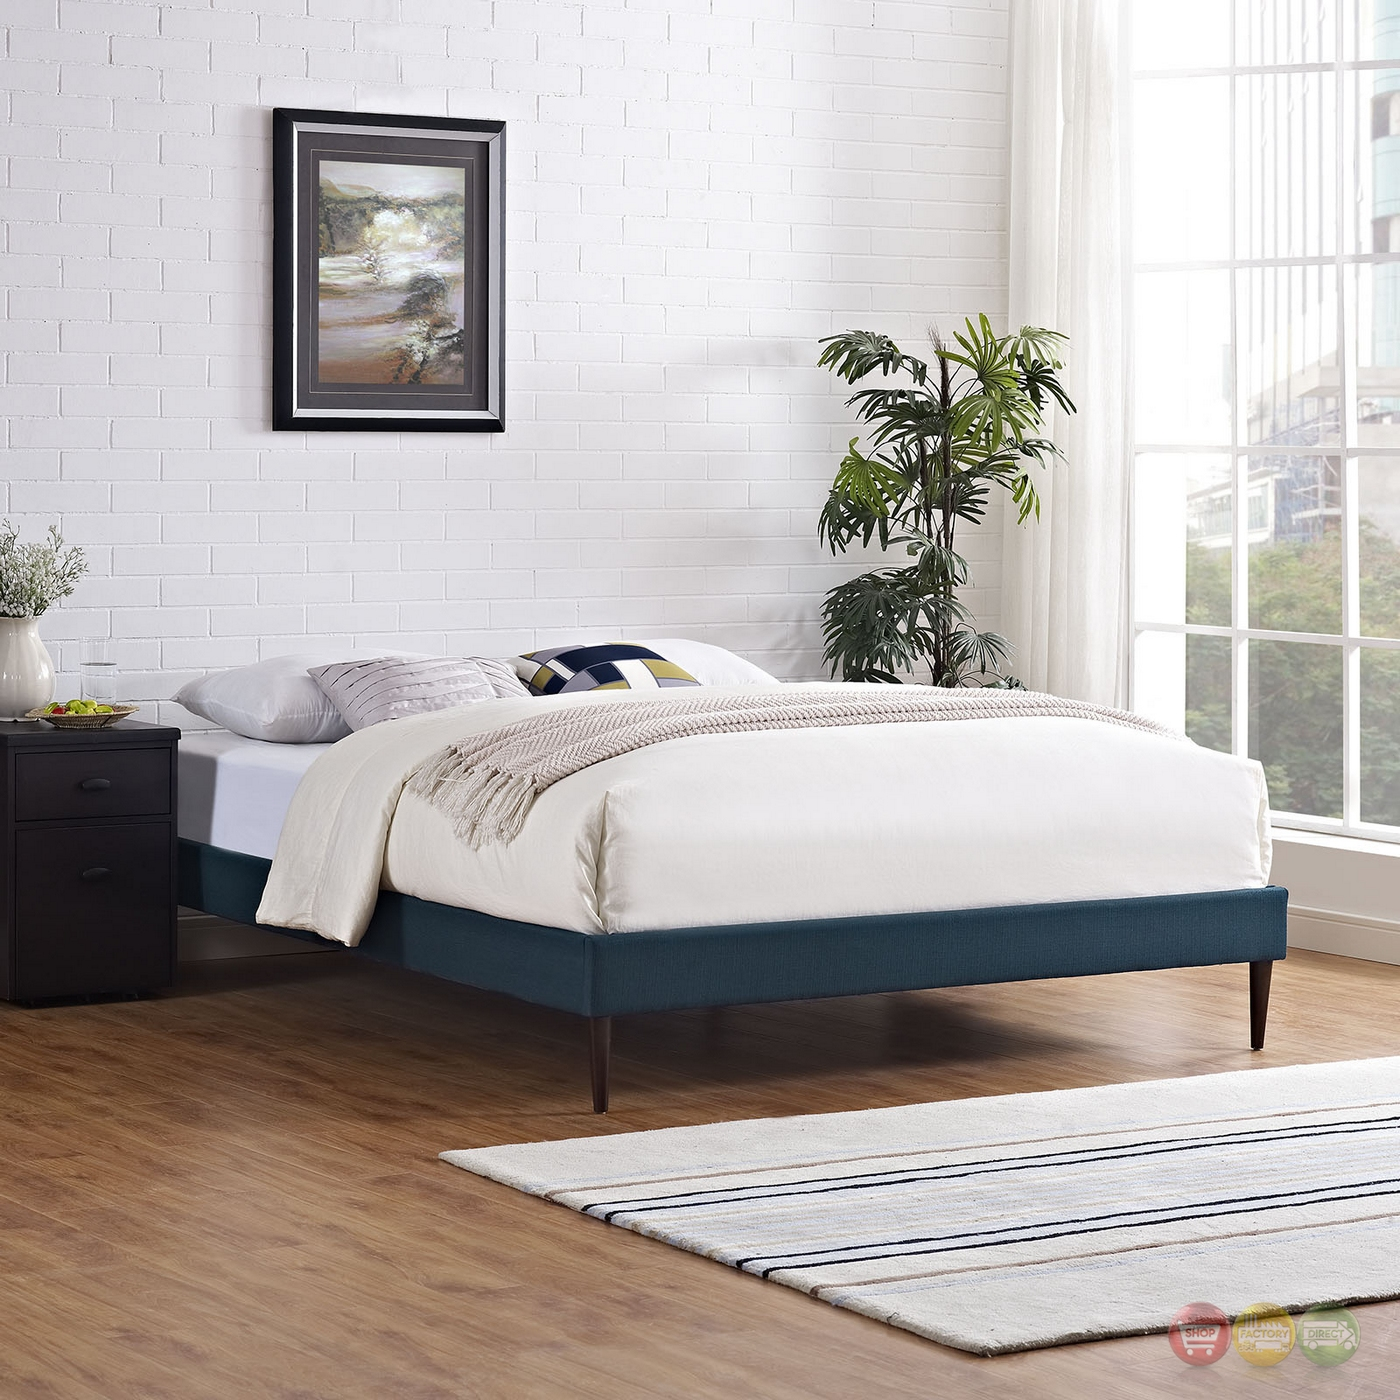 Sherry upholstered fabric full platform bed frame azure for Upholstered platform bed frame